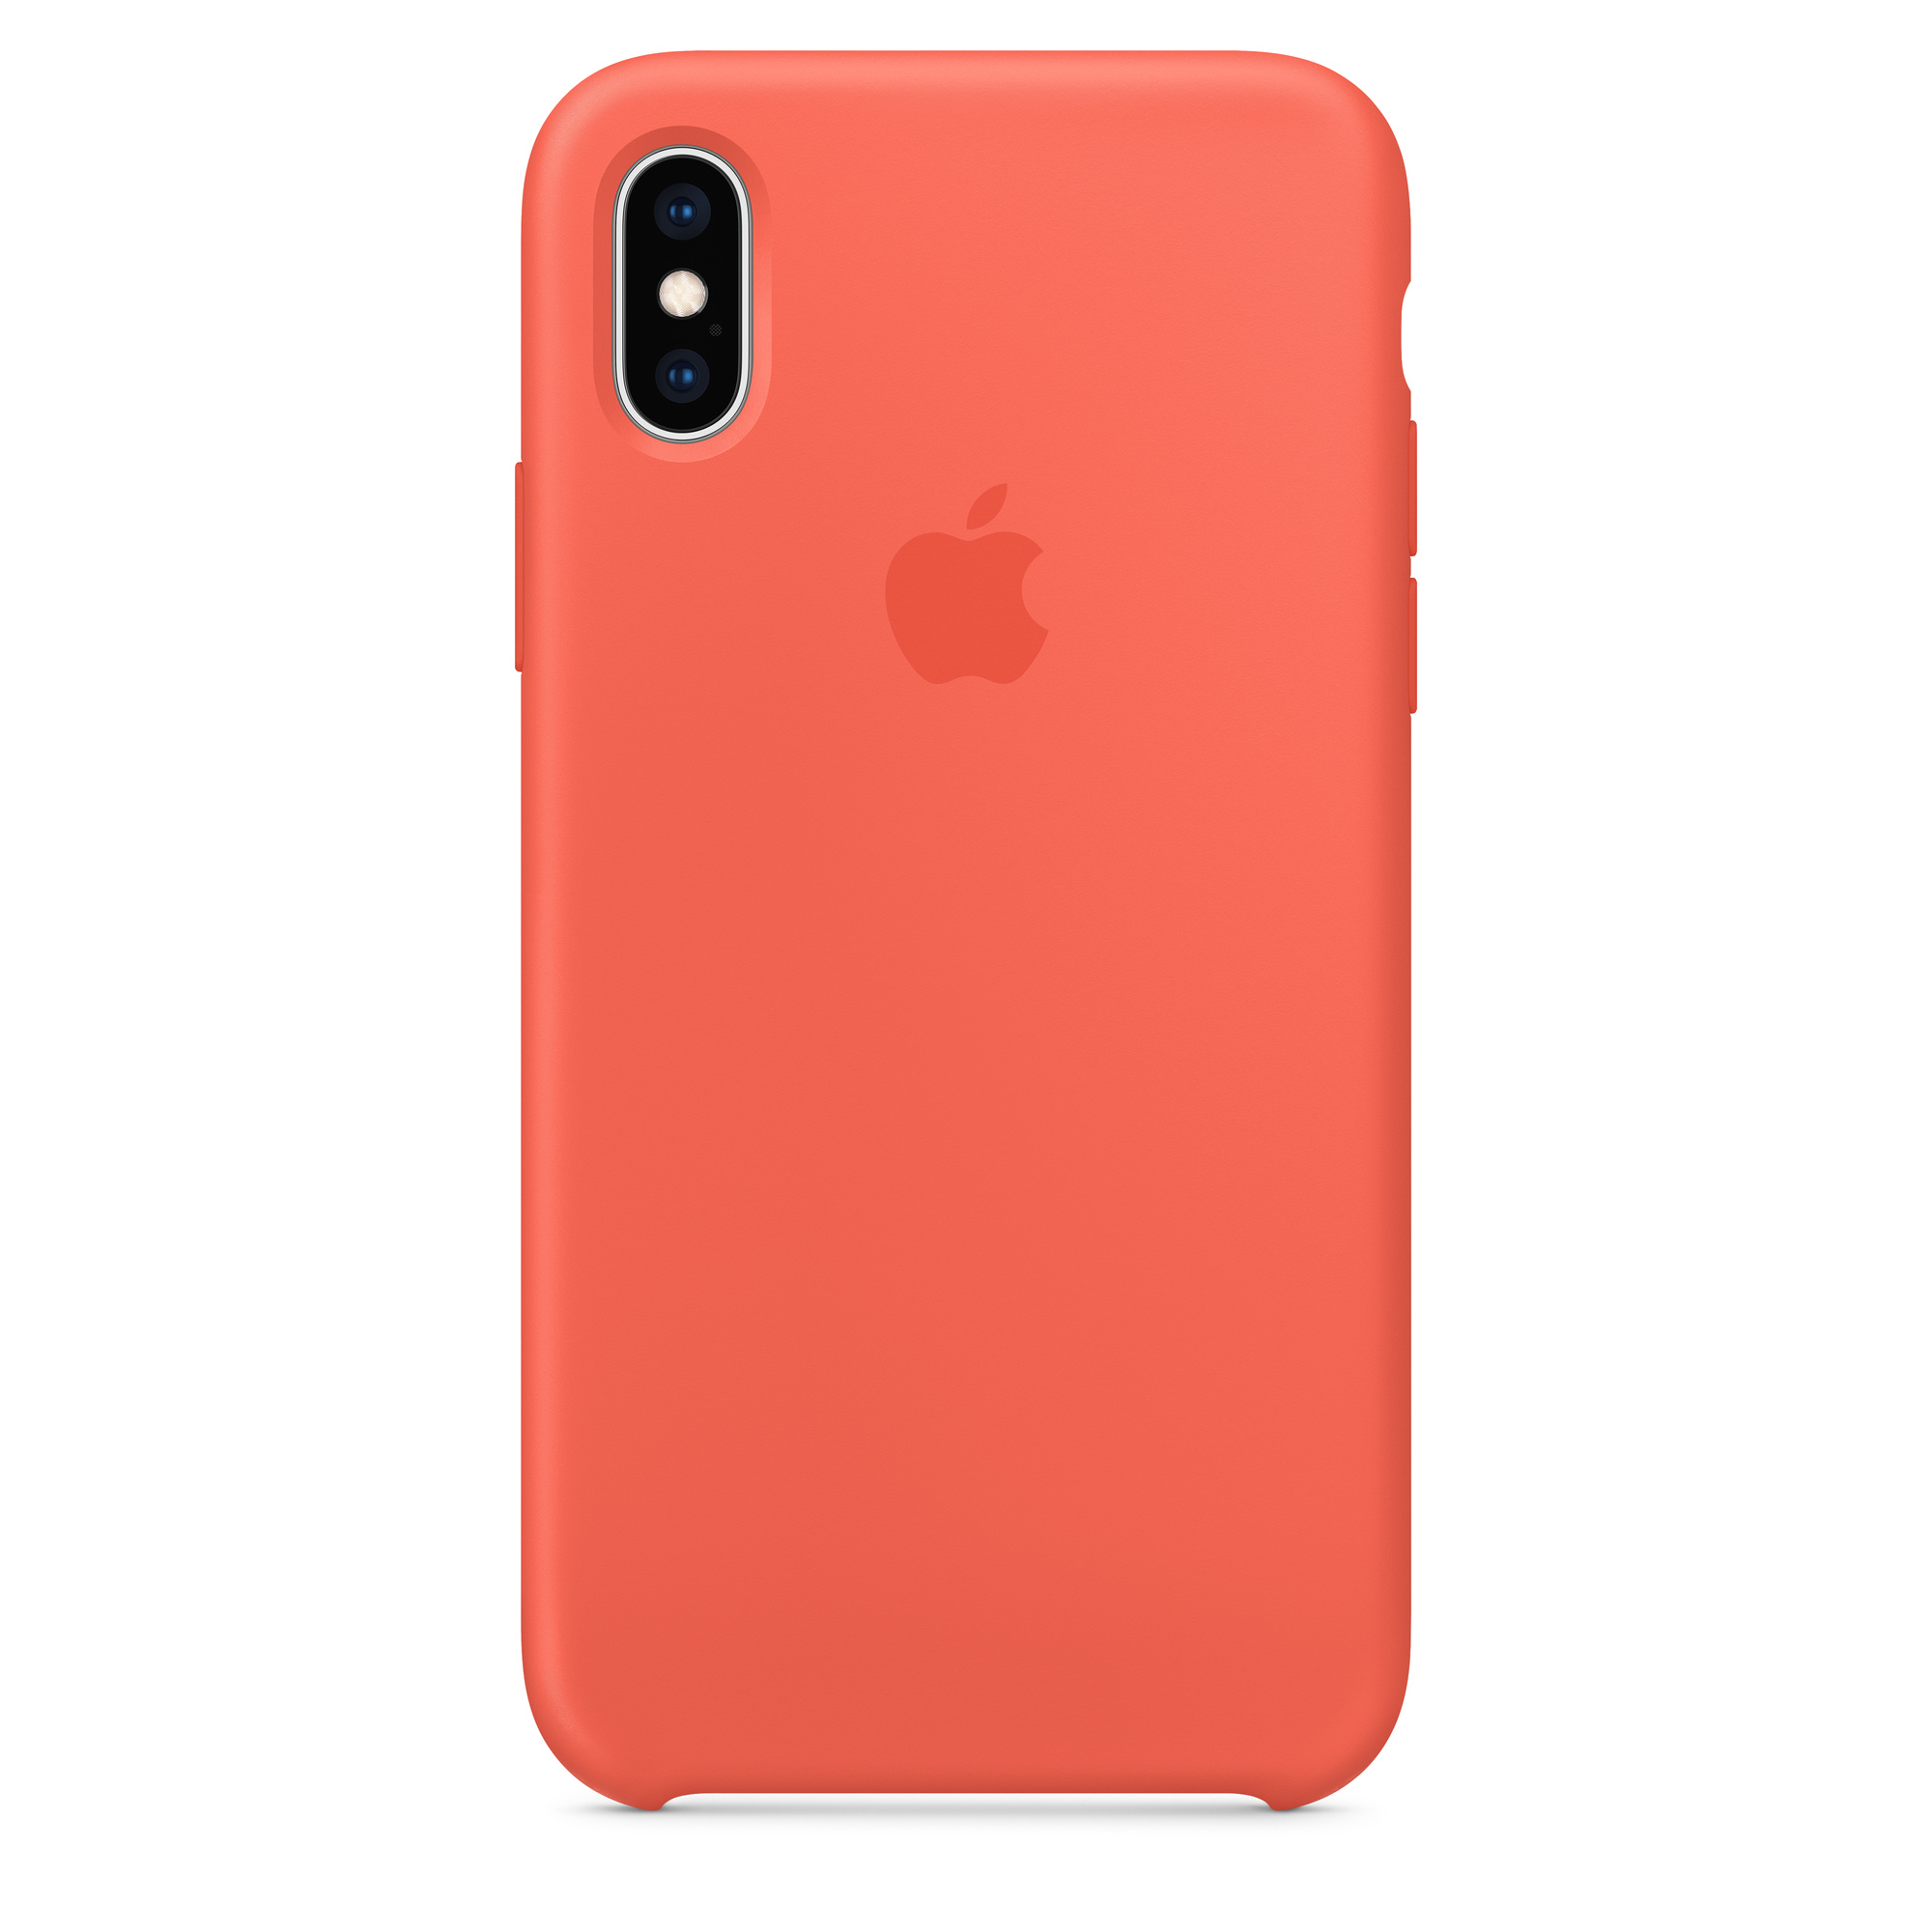 info for ec546 0f905 iPhone XS Silicone Case - Nectarine